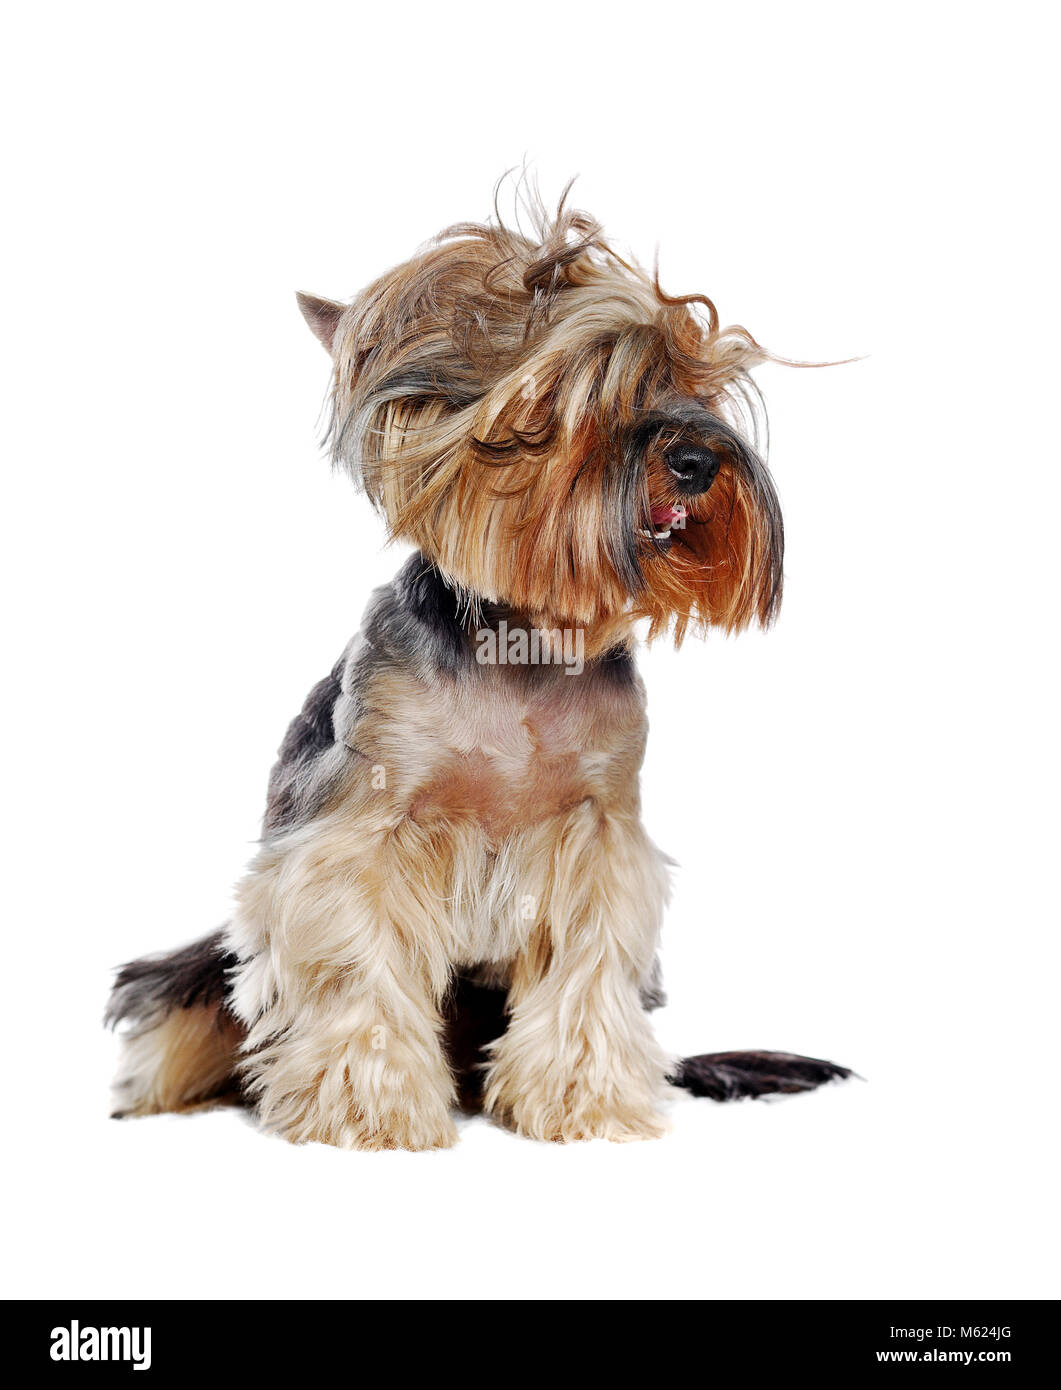 Yorkshire Terrier with tousled hair isolated over white background - Stock Image